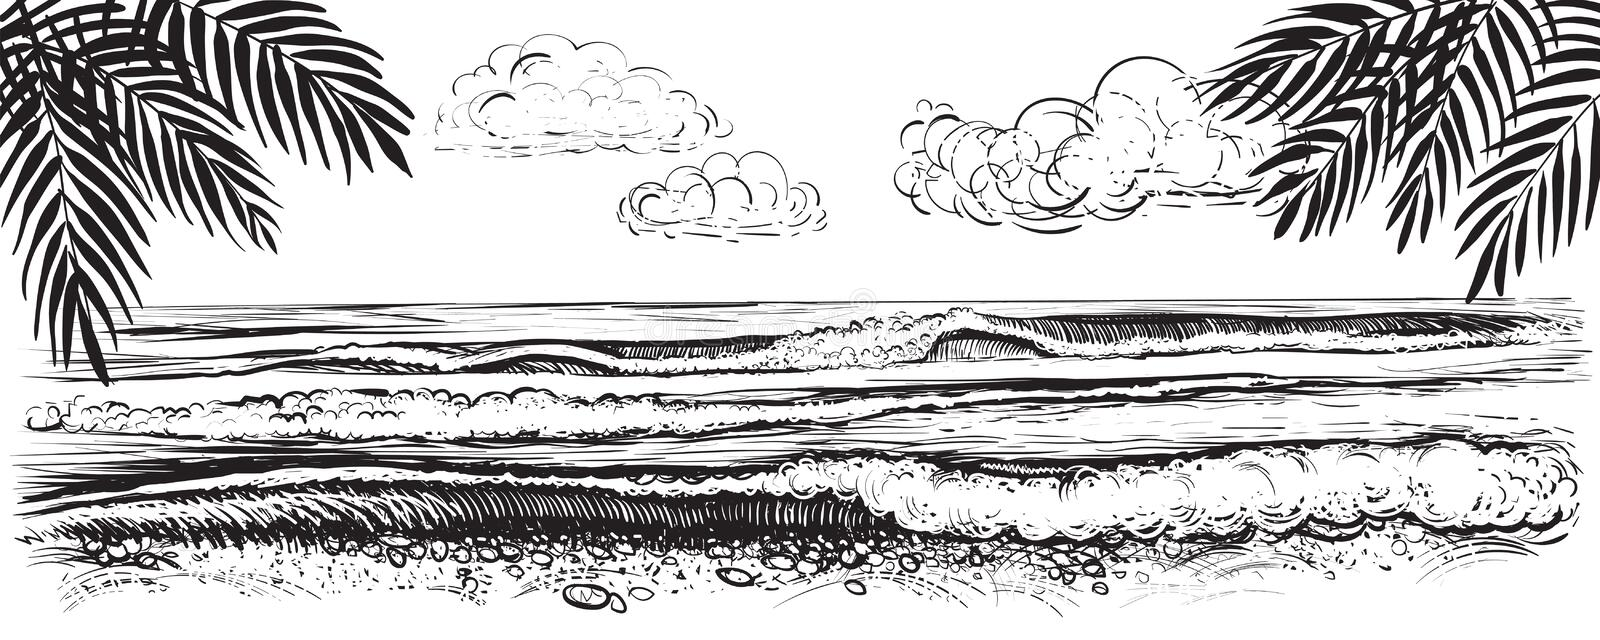 Panoramic beach view. Vector illustration of ocean or sea waves. Hand drawn. royalty free illustration